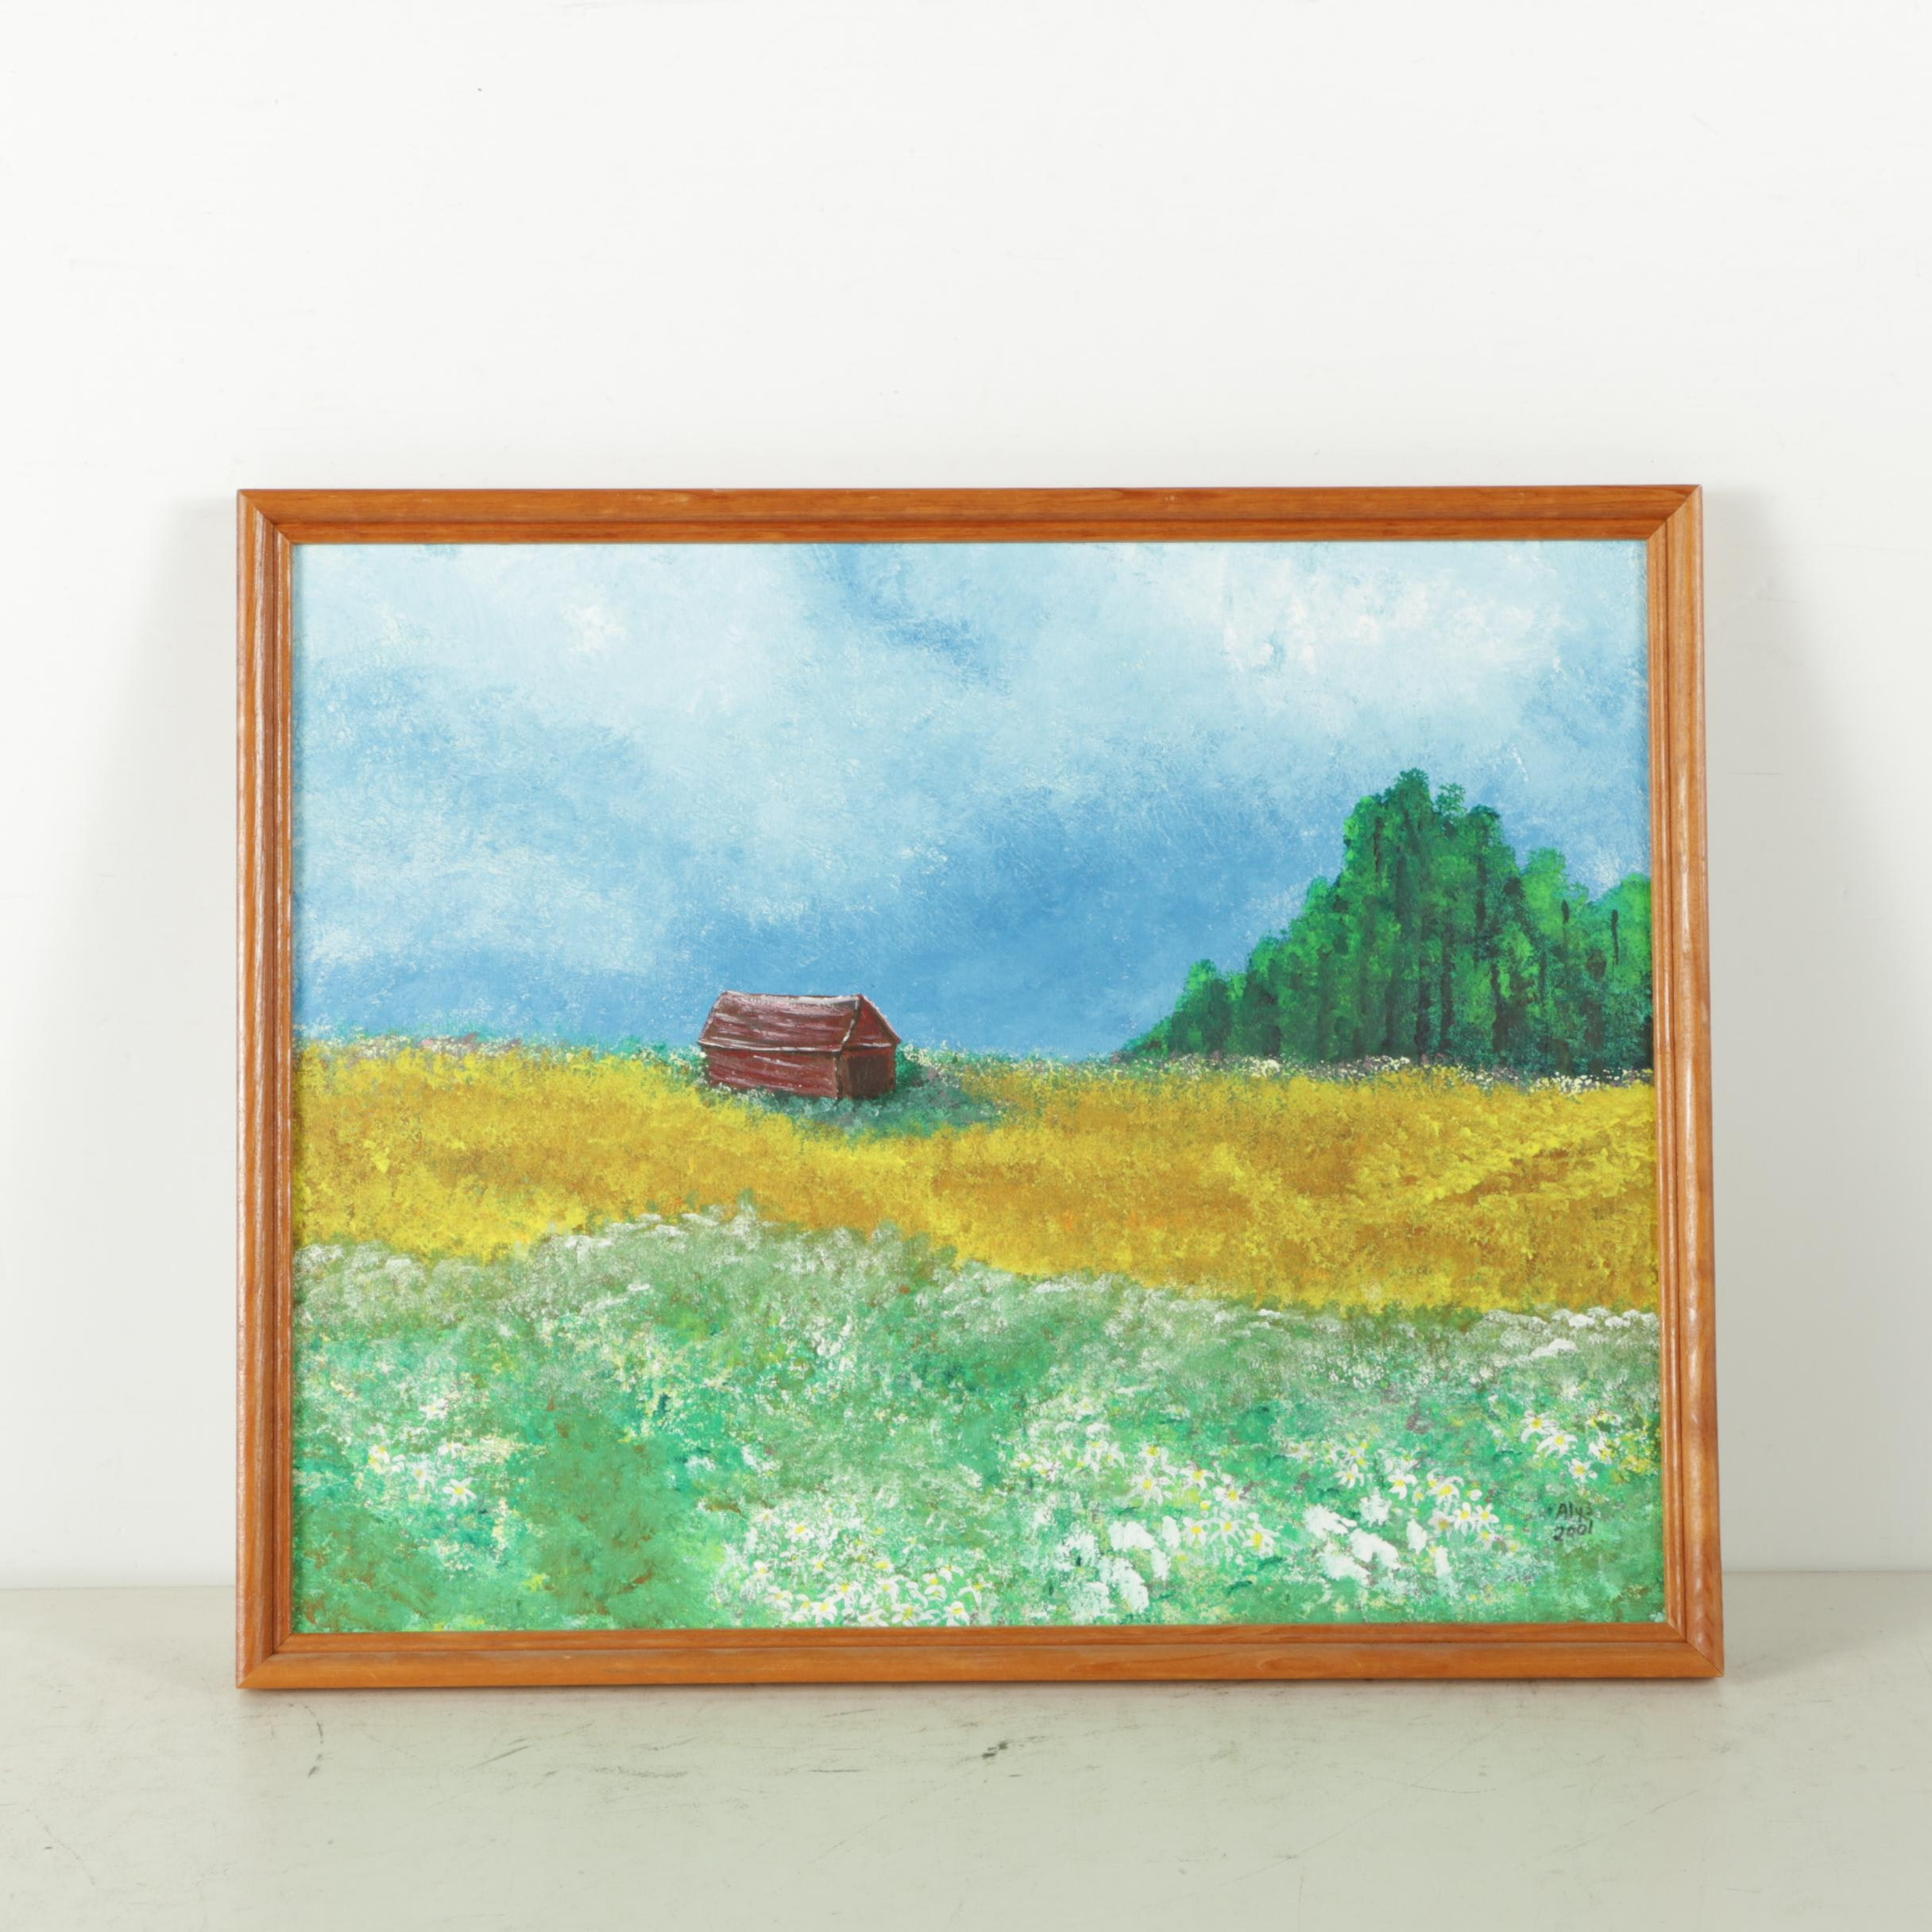 Alys Caviness-Gober Acrylic Painting on Canvas Board of Pastoral Landscape